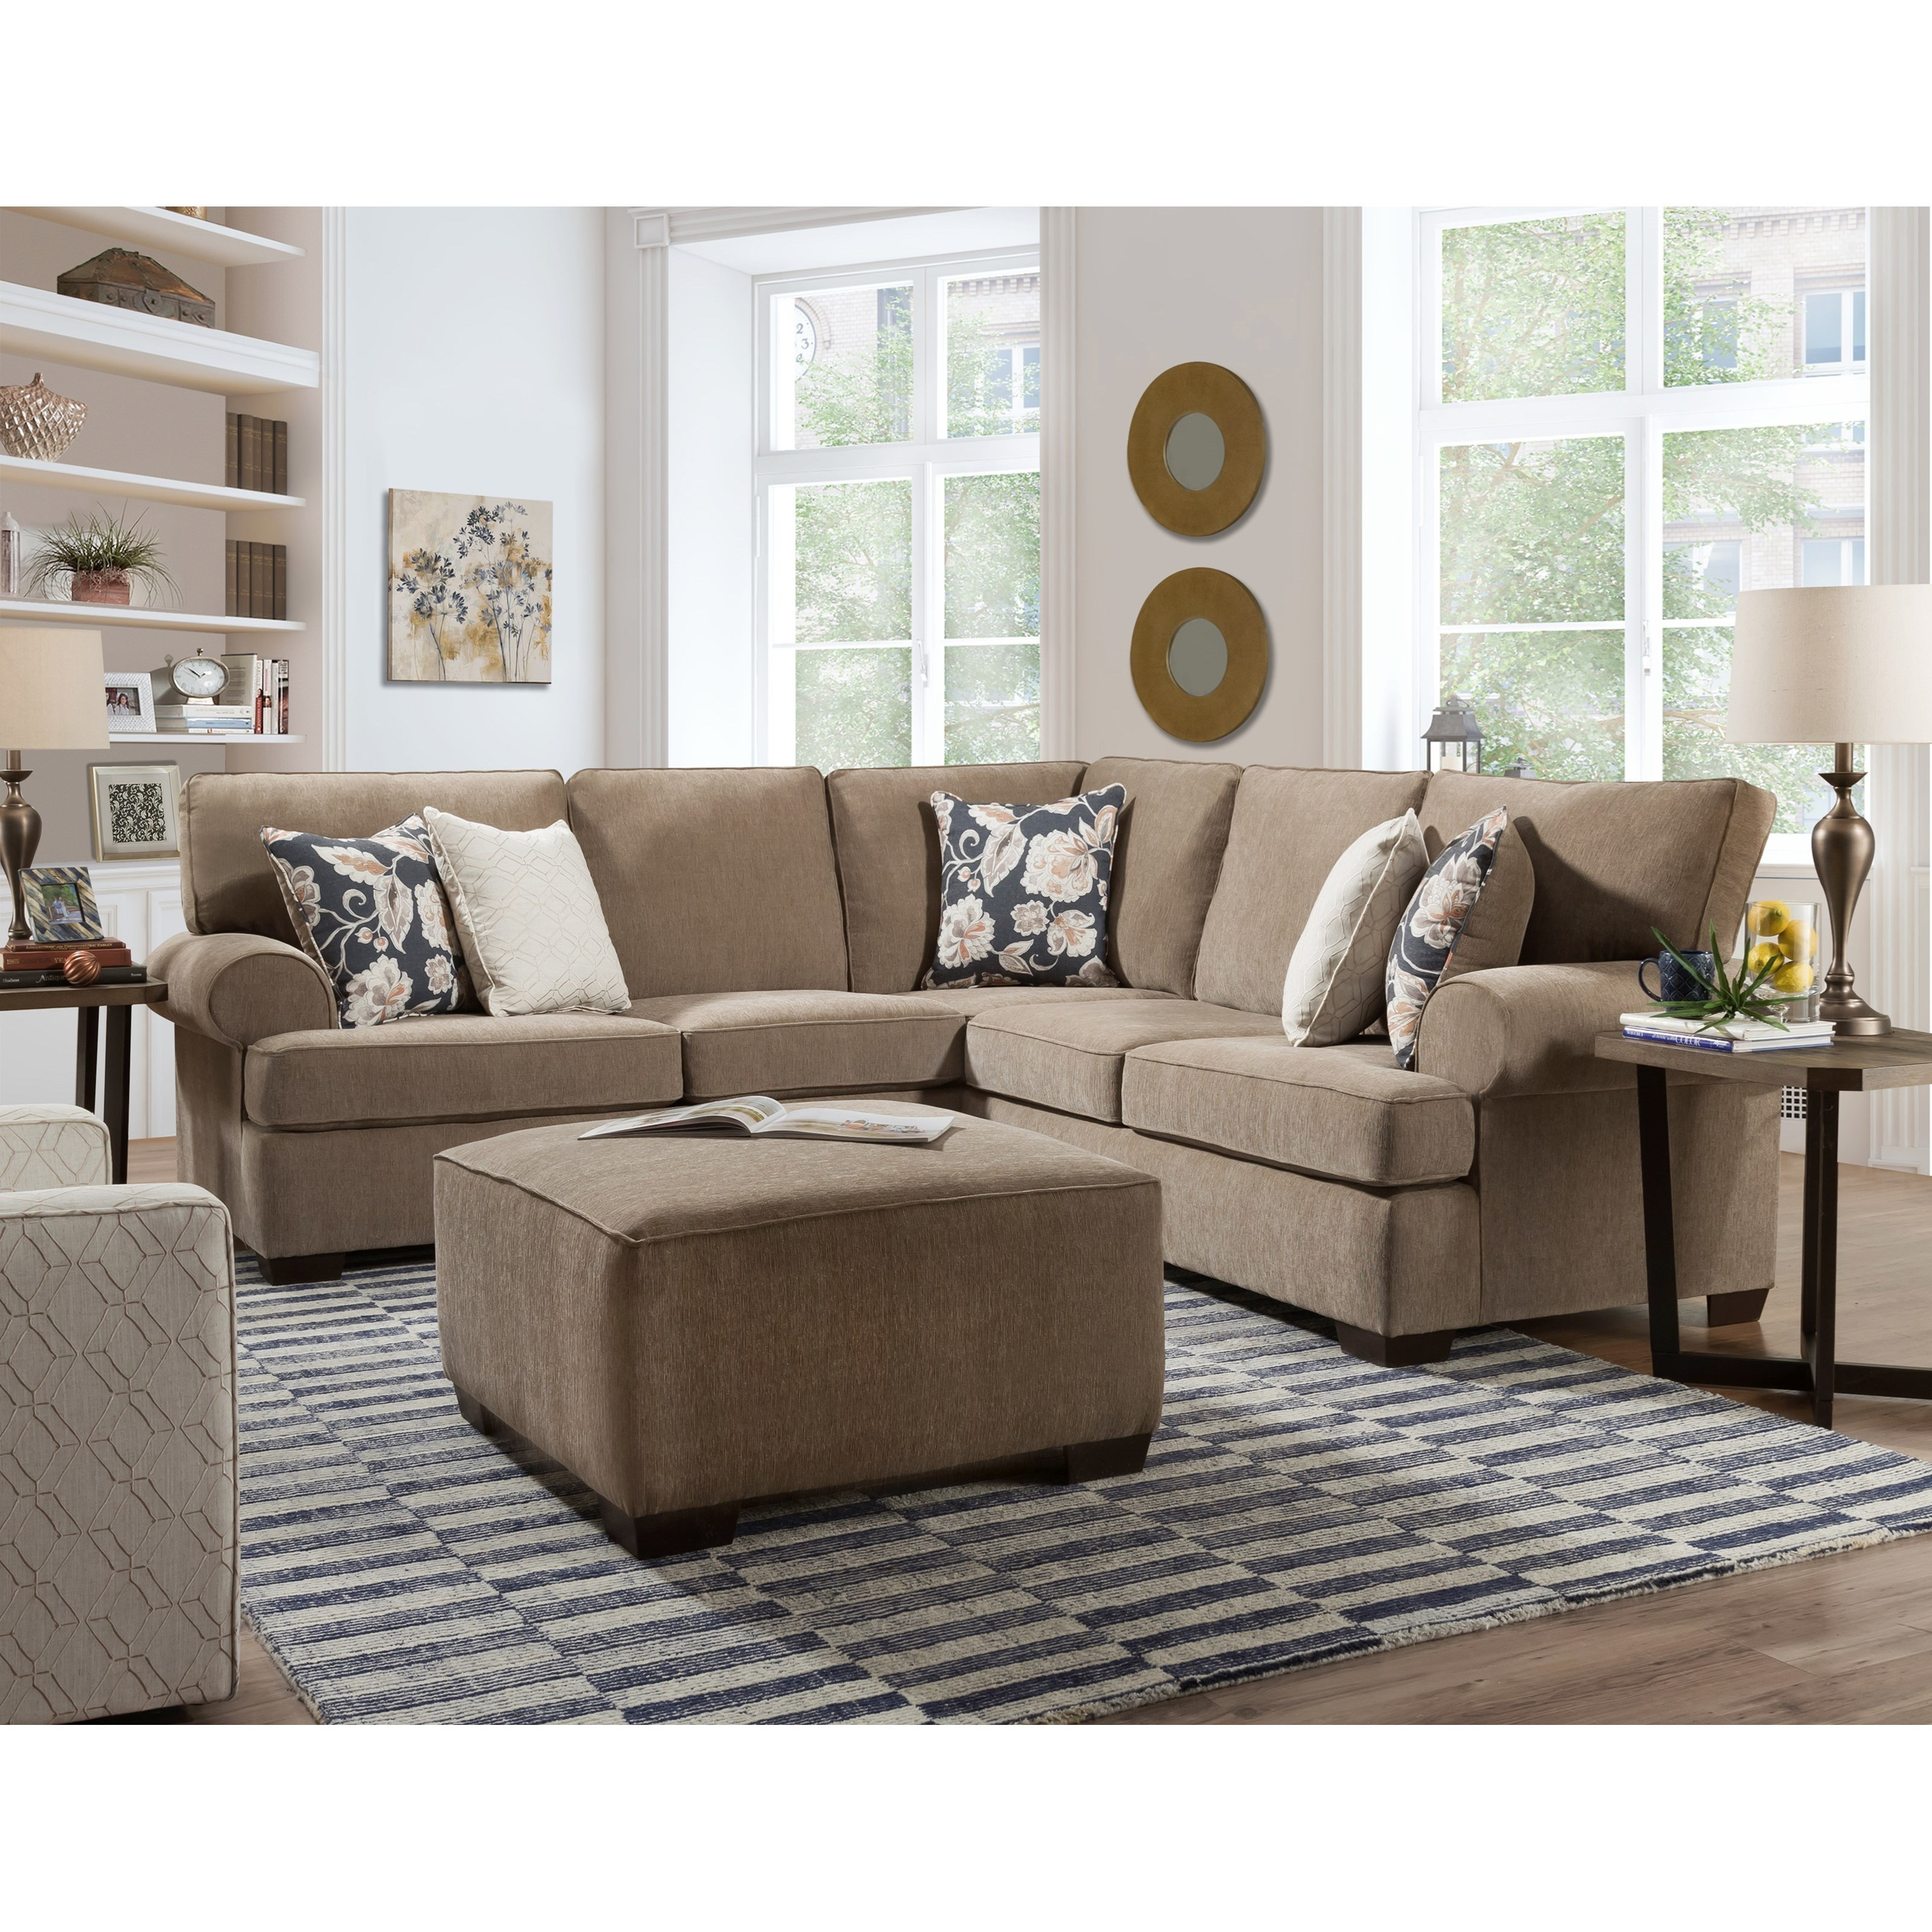 3010 Living Room Group by Peak Living at Prime Brothers Furniture